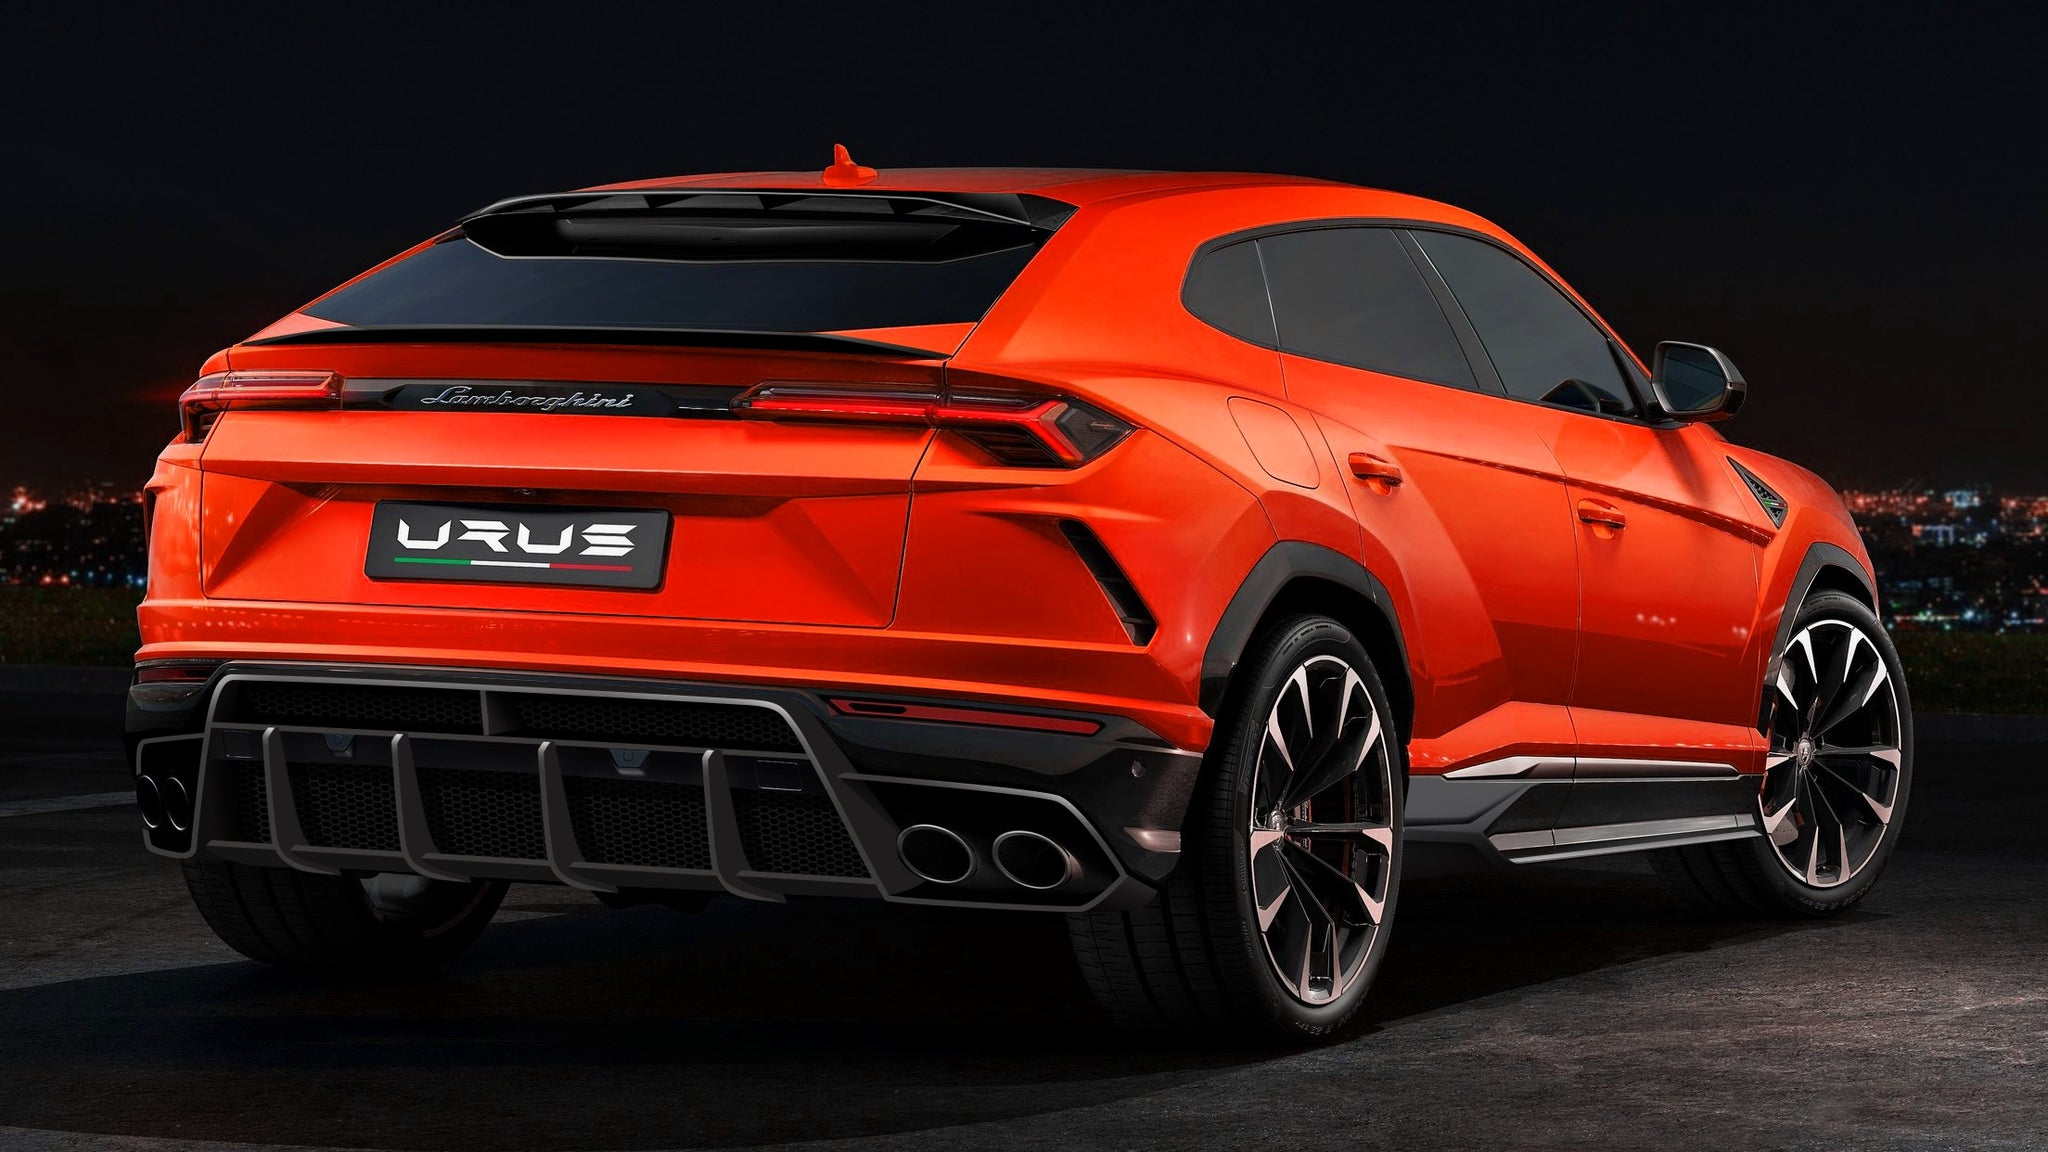 LAMBORGHINI URUS - 1016 INDUSTRIES CARBON FIBER AERO KIT